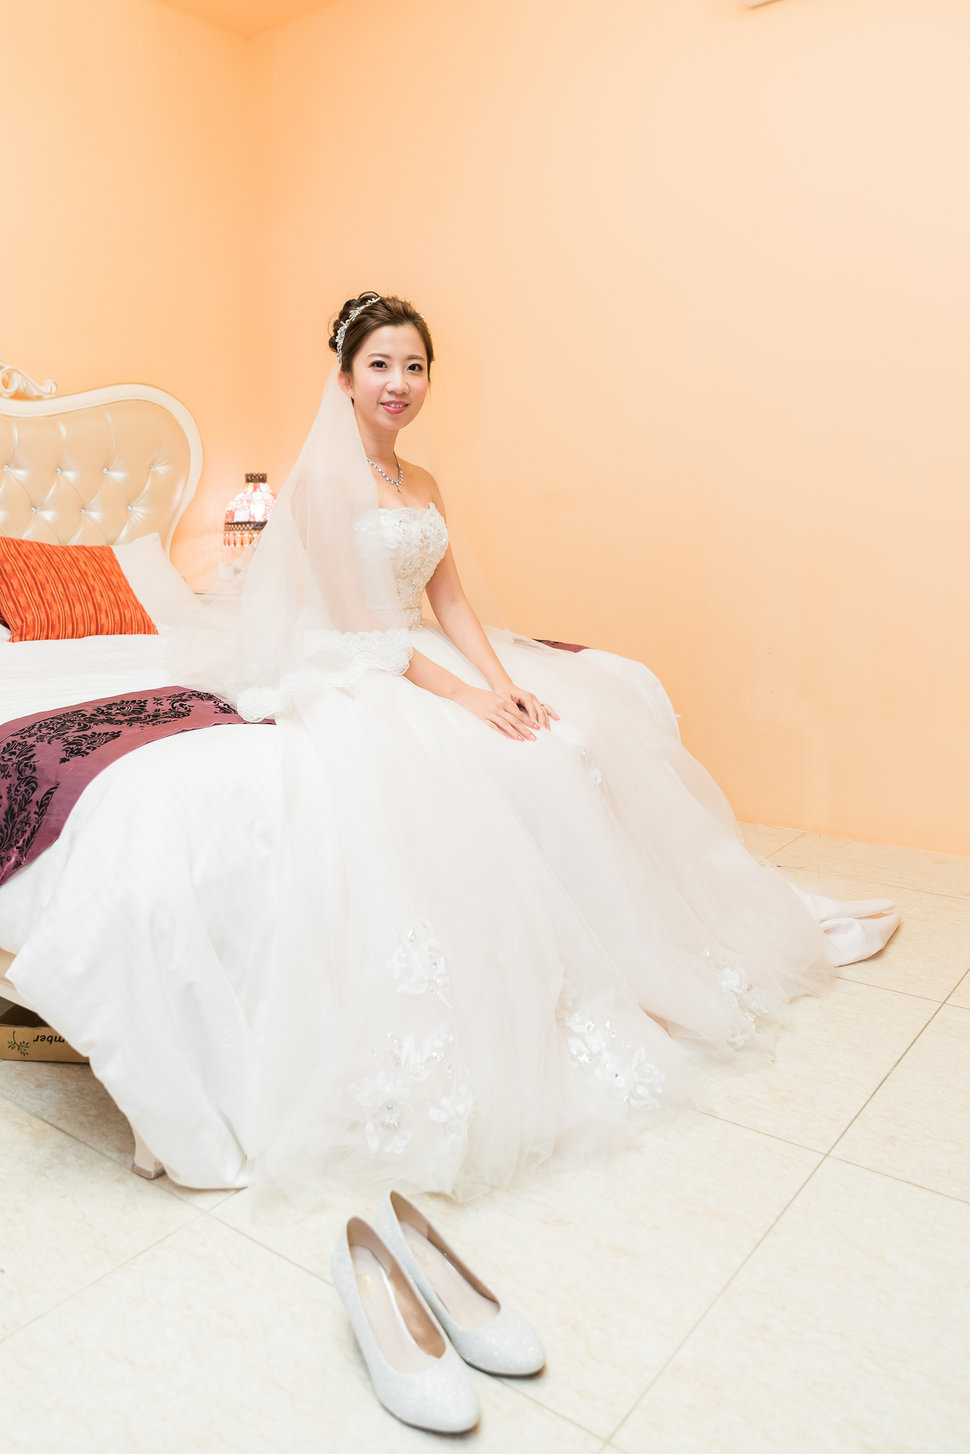 51 - Wei Photography - 結婚吧